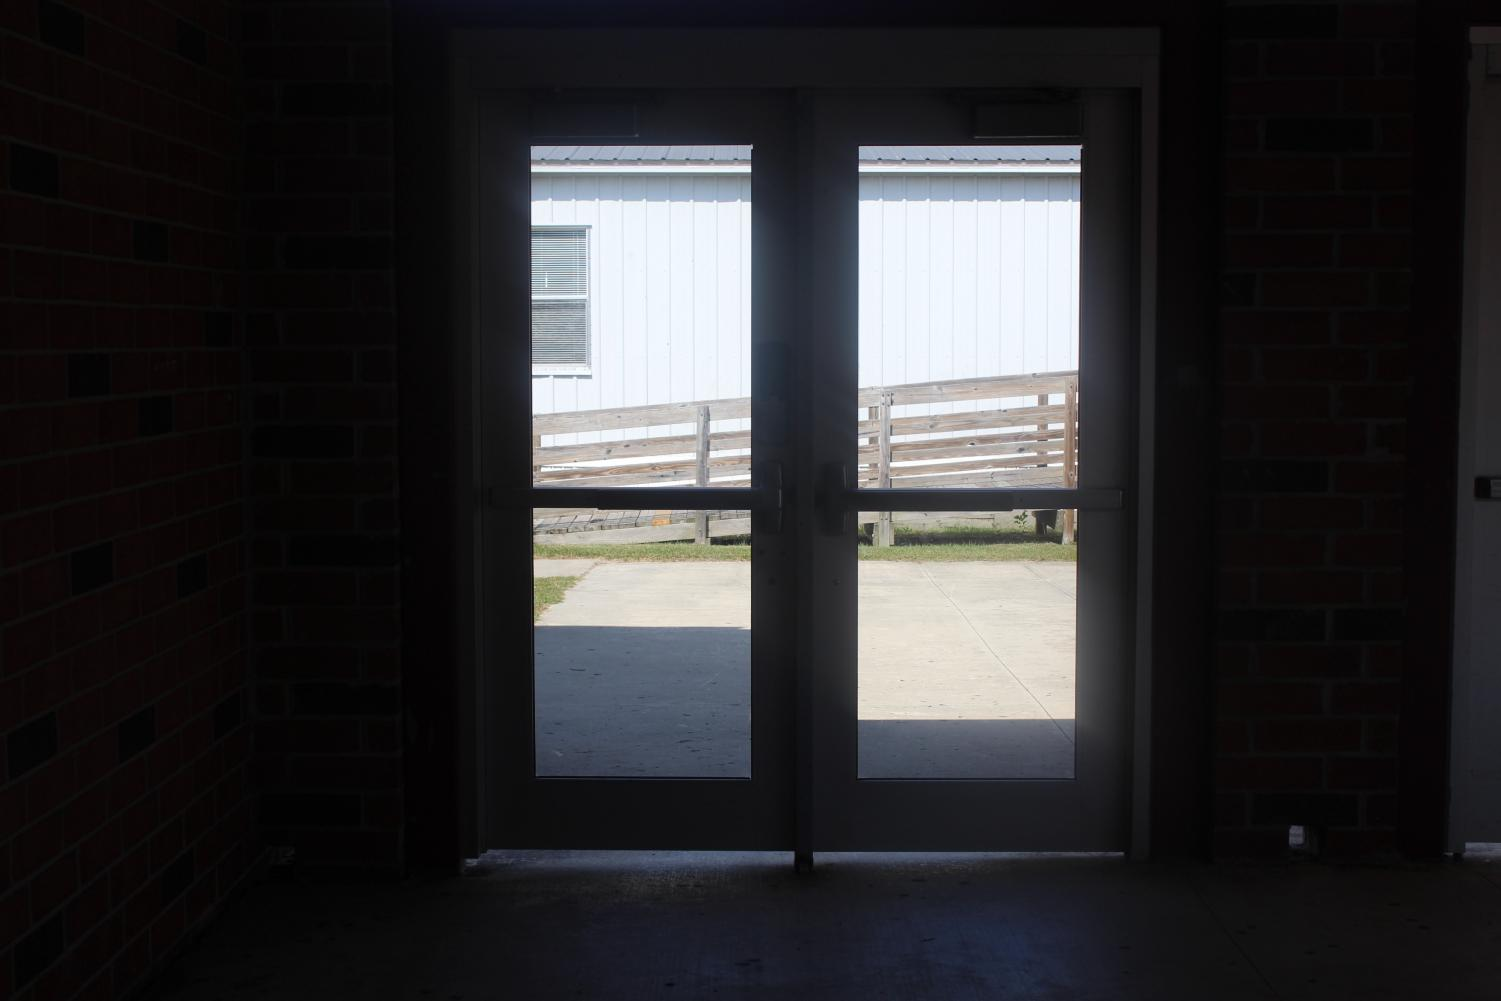 A capture of the locked doors to an entrance to a school.